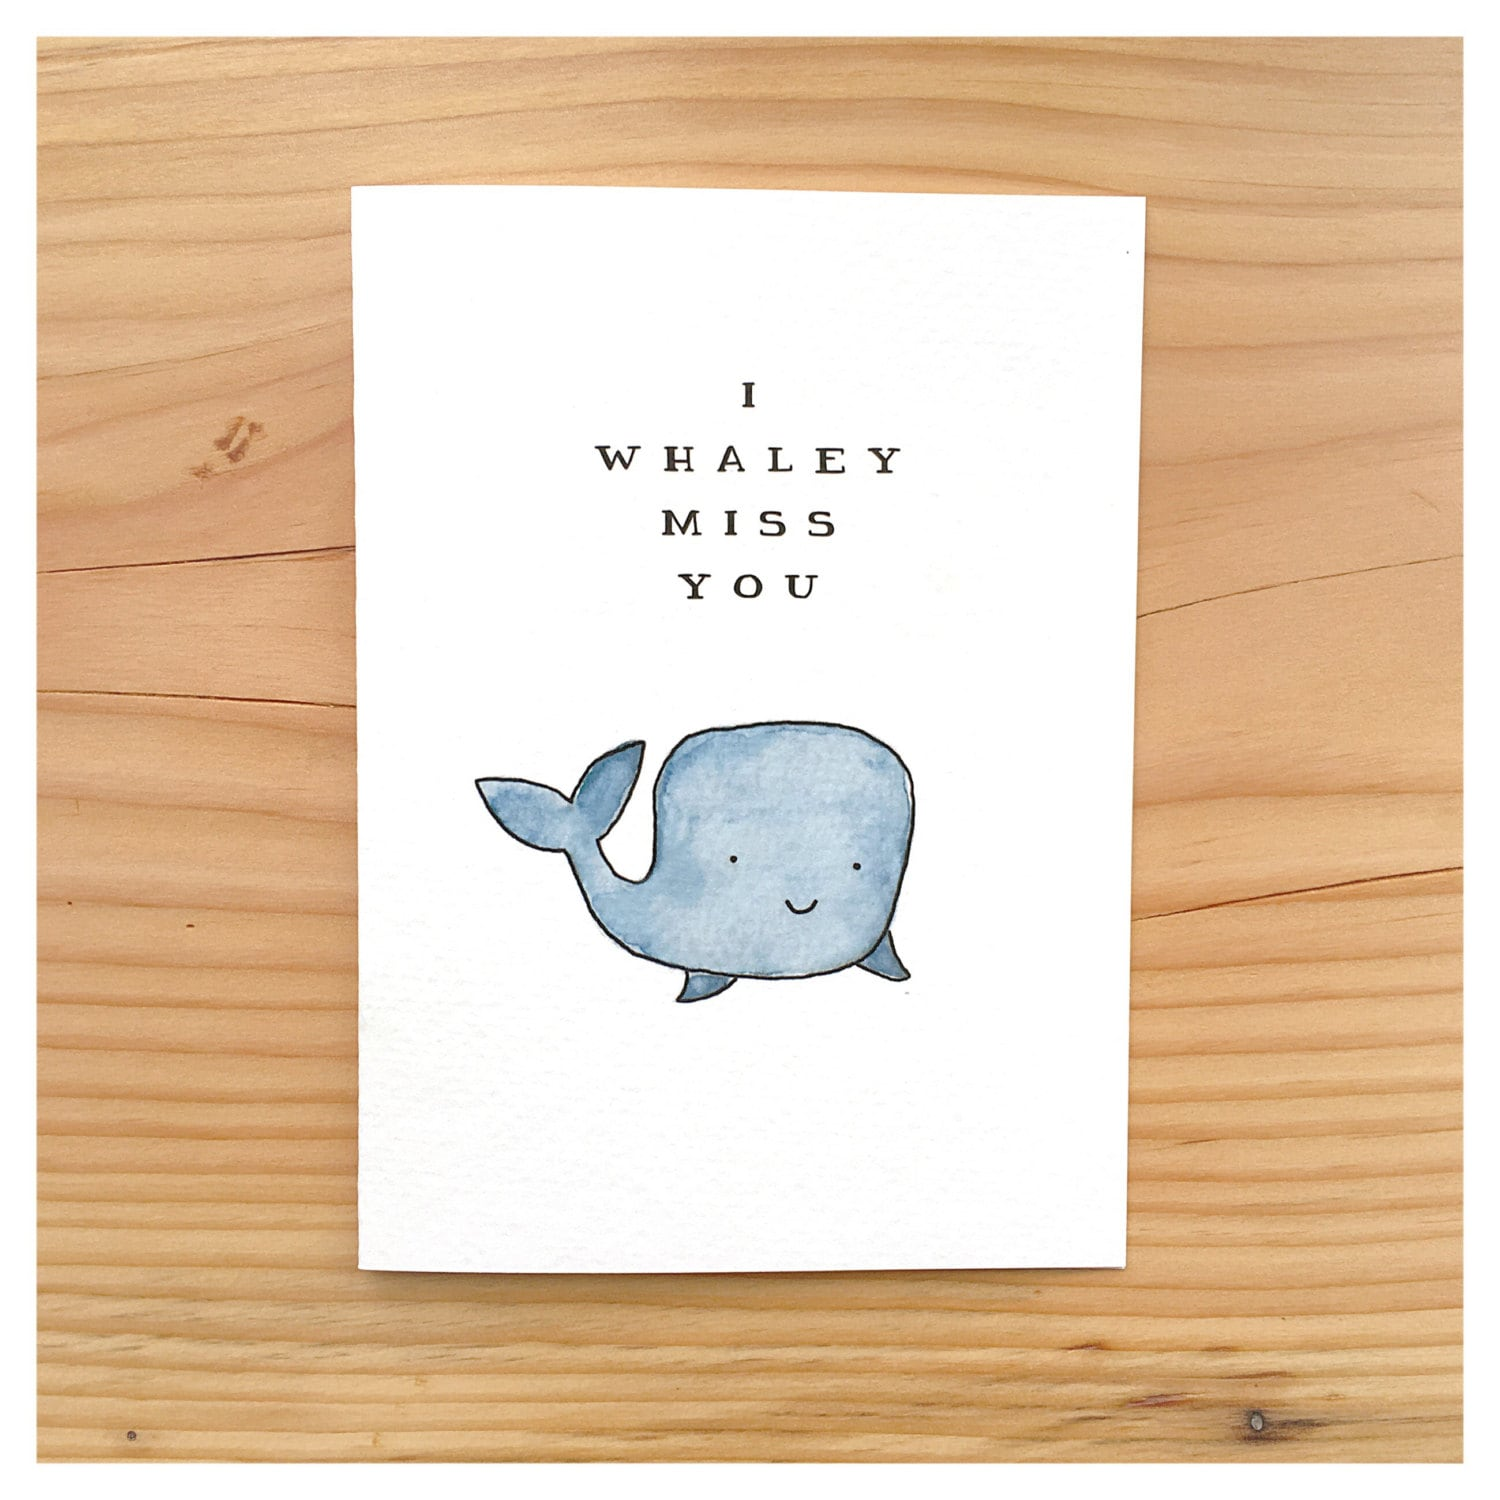 Miss you miss you card cute miss you card cute card whale card miss you miss you card cute miss you card cute card whale card pun card cute birthday card funny birthday card for her for him kristyandbryce Image collections